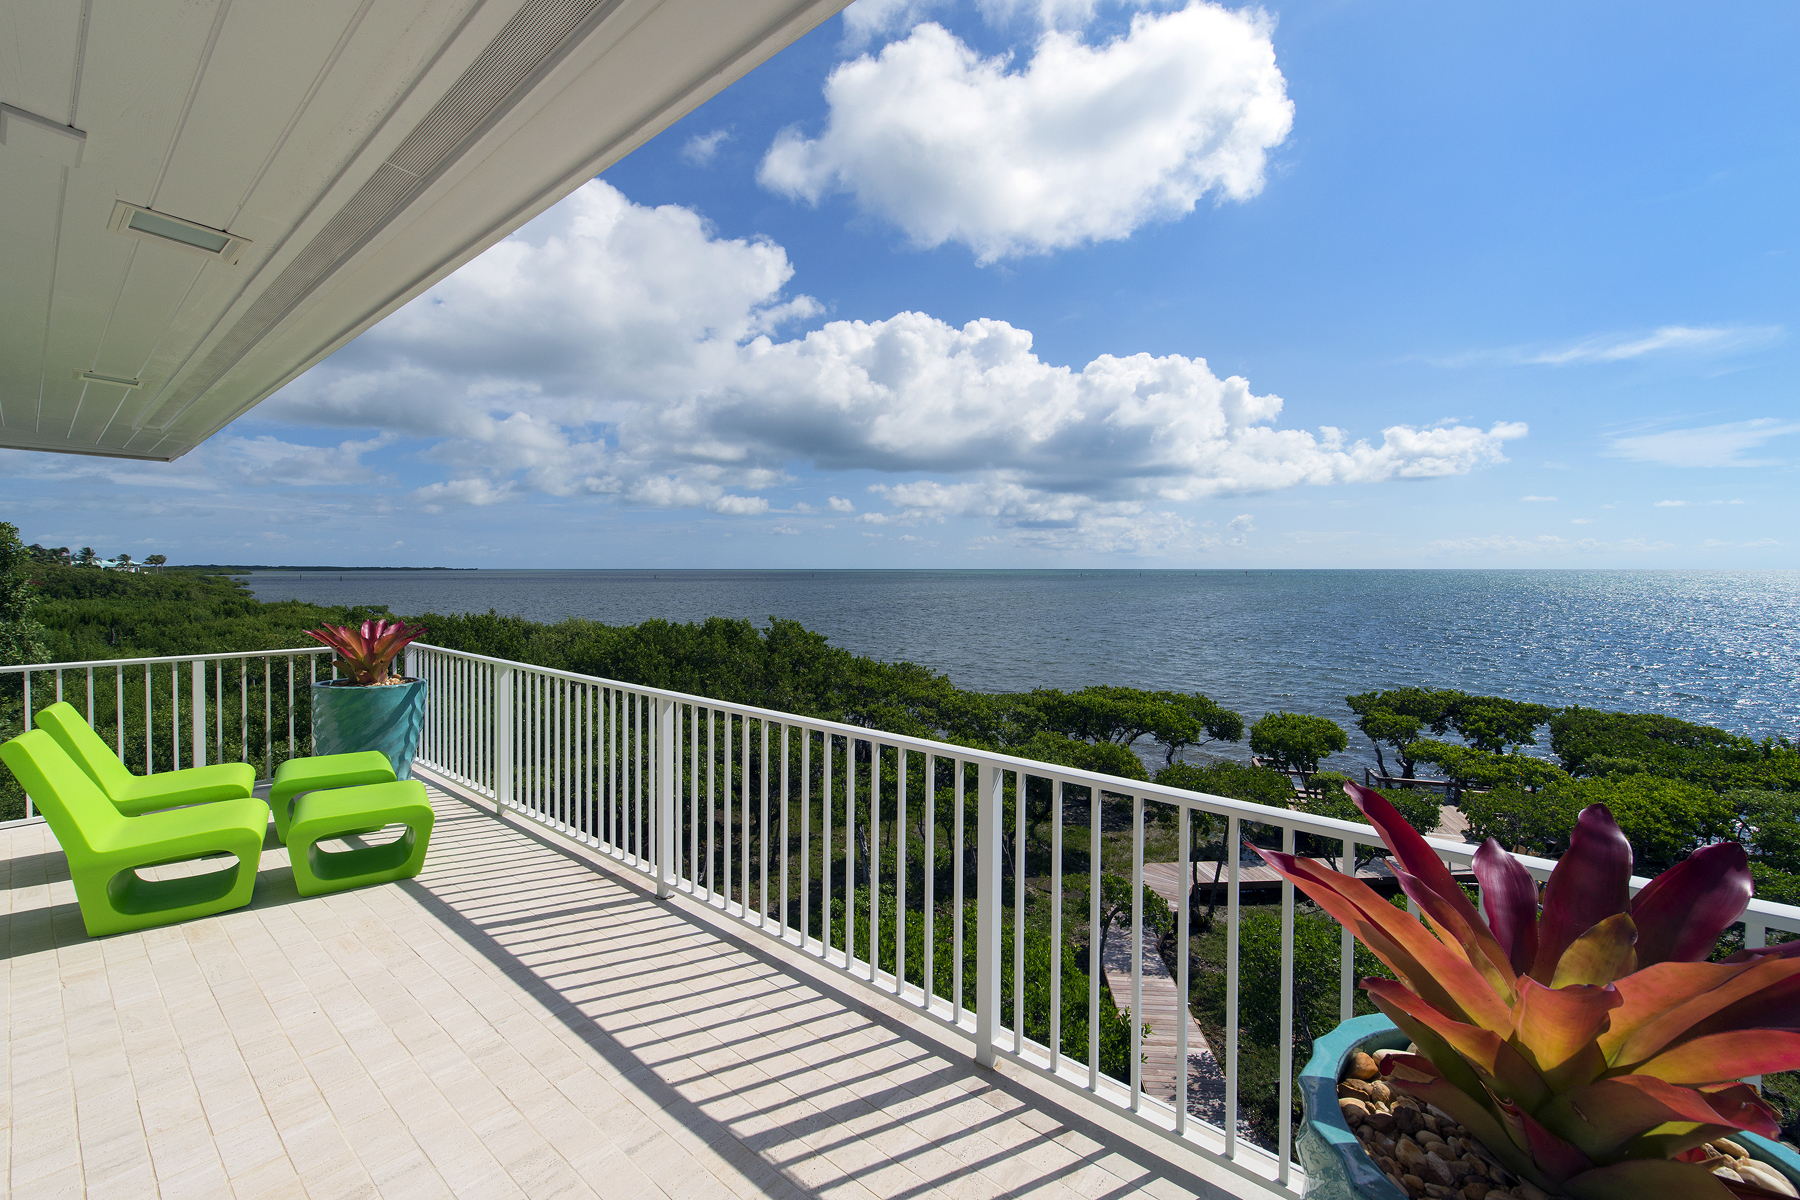 Single Family Home for Sale at Captivating Ocean Front Views at Ocean Reef 15 Sunrise Cay Drive Key Largo, Florida, 33037 United States